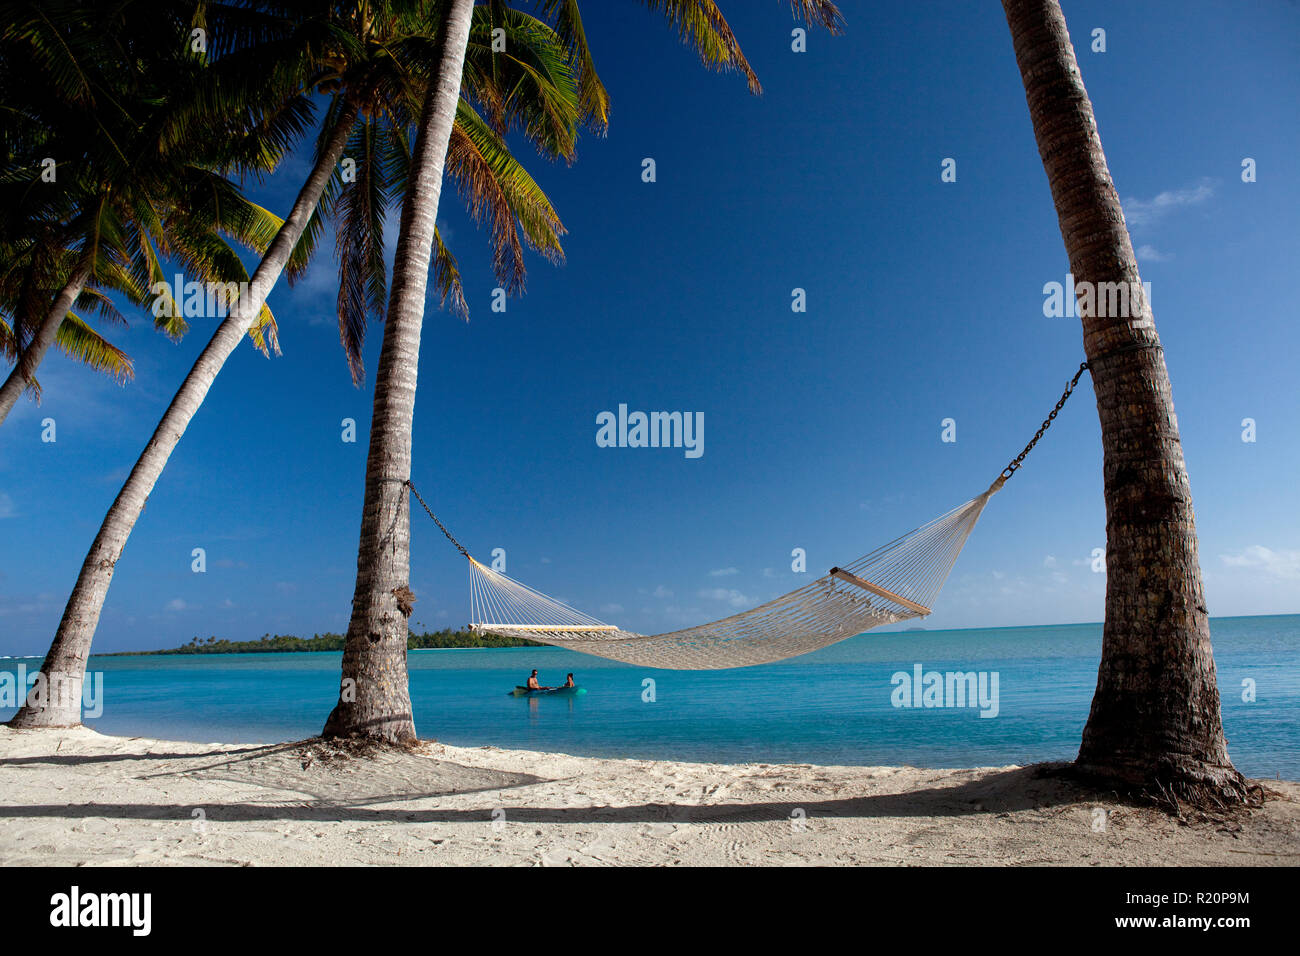 The perfect place to take in the view over Aitutaki Lagoon, Cook Islands. - Stock Image